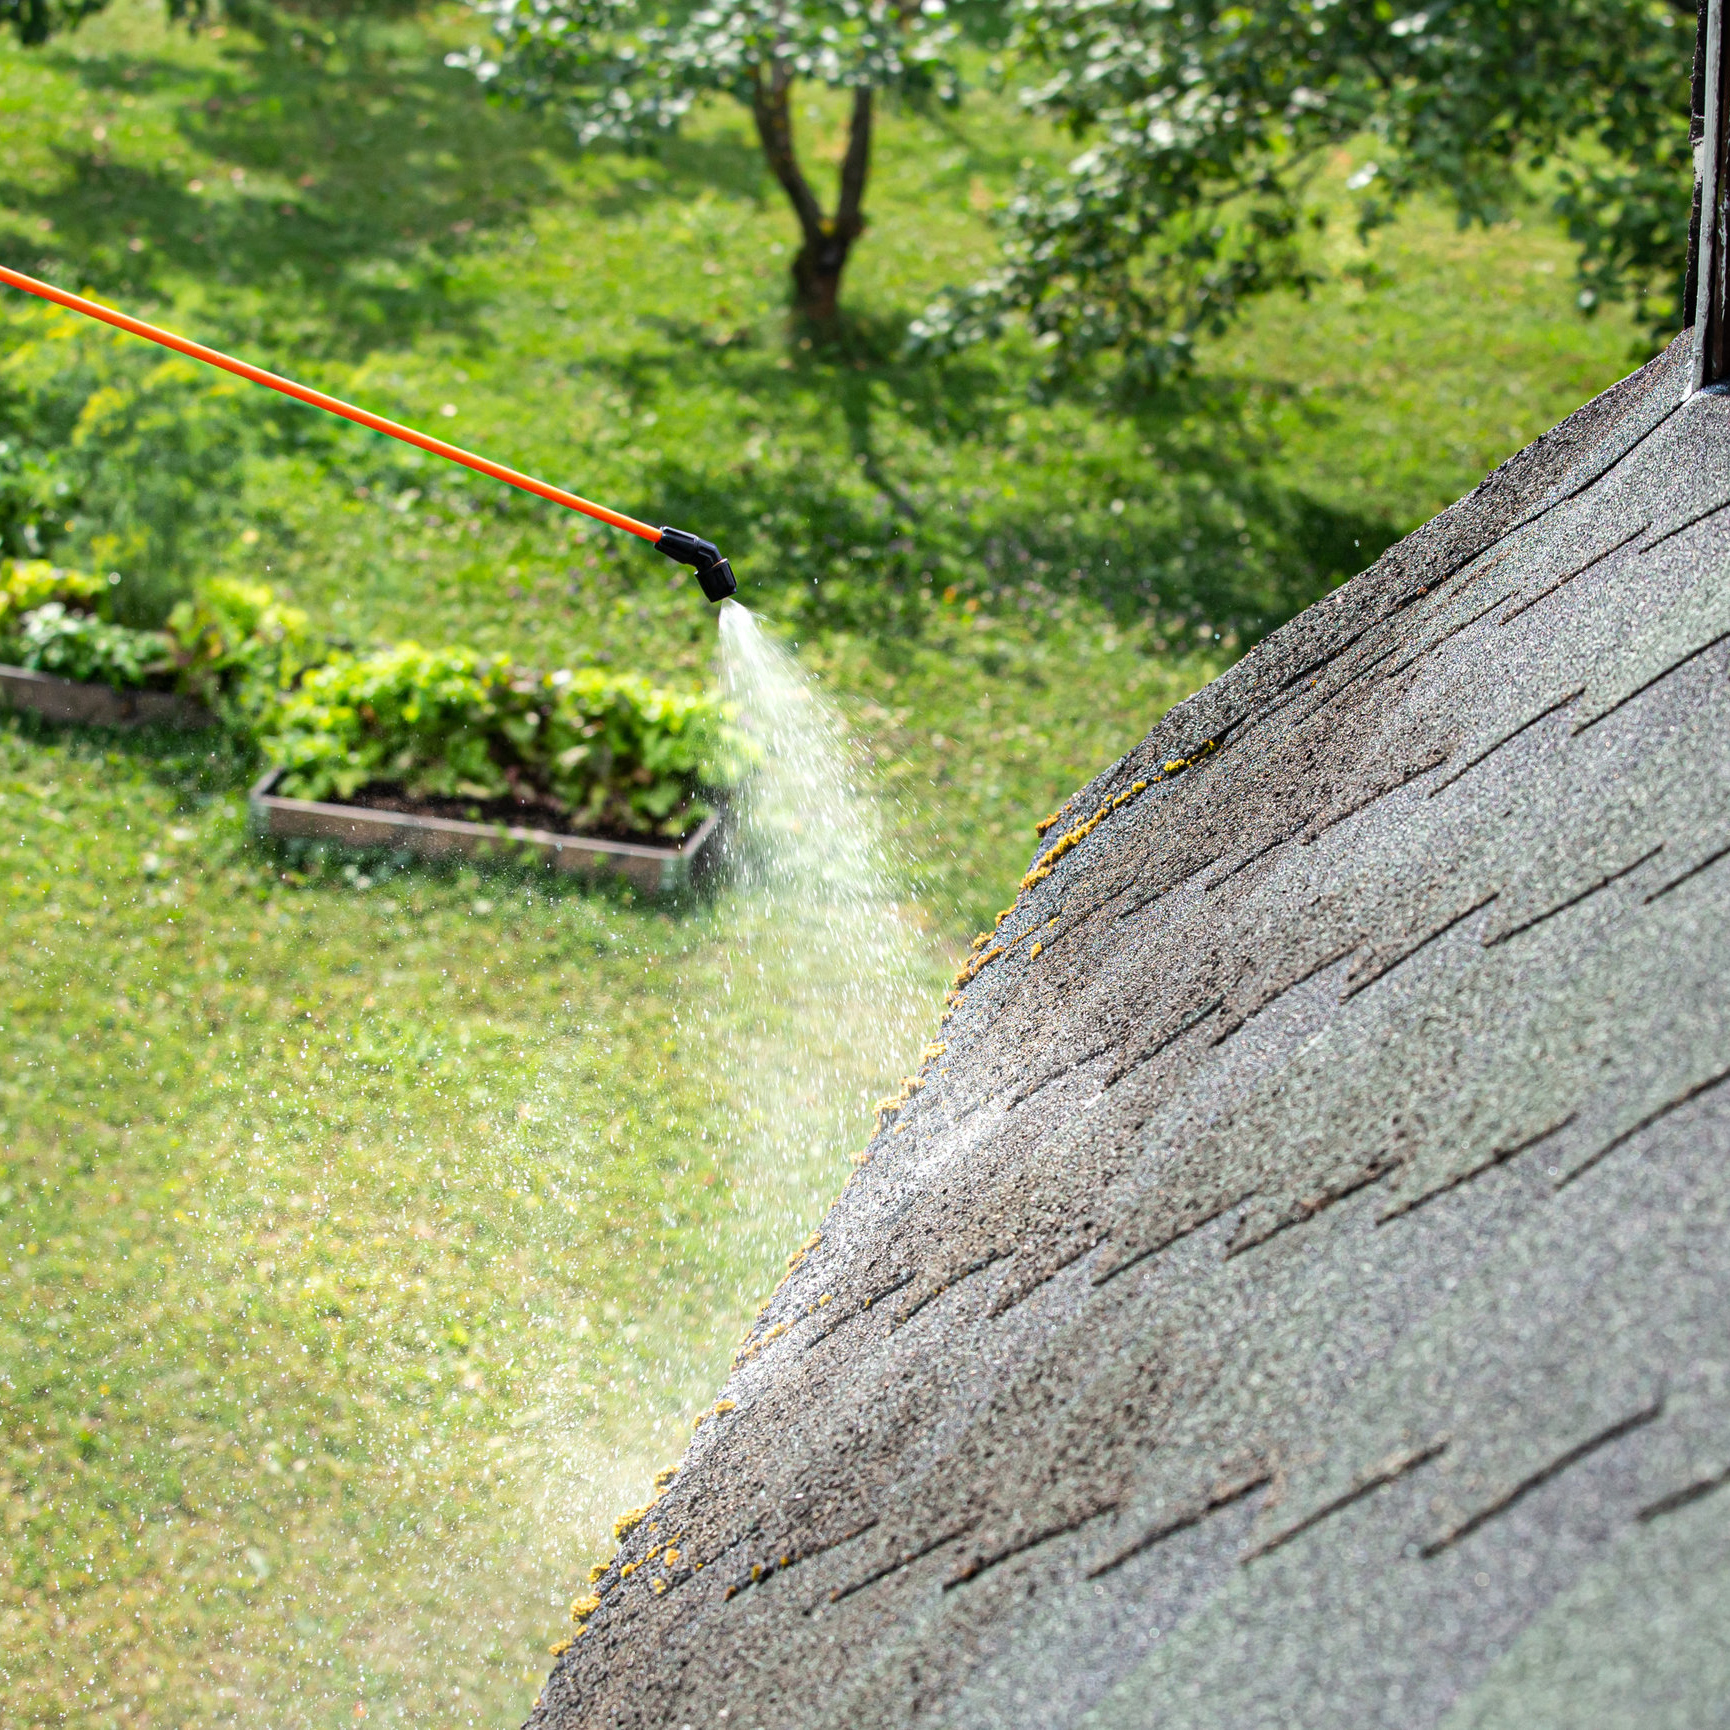 Cleaning moss off a roof